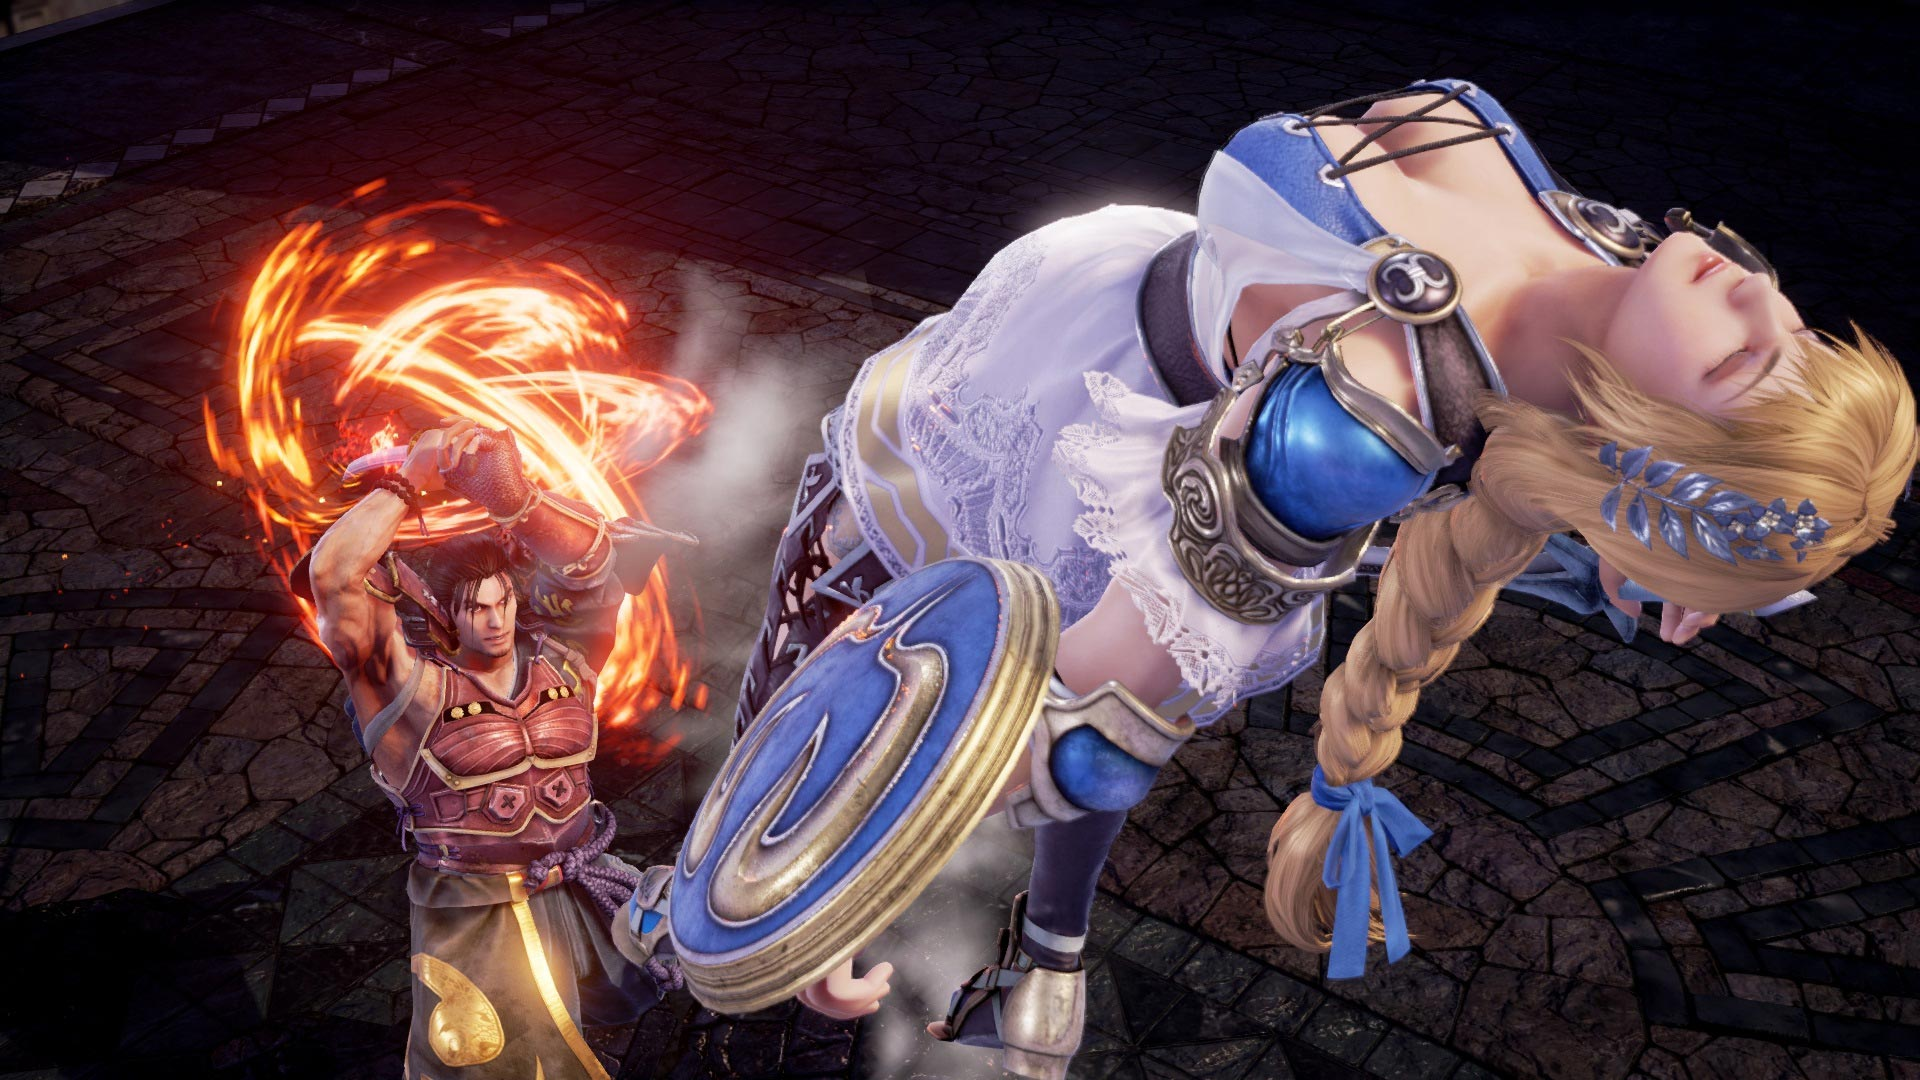 Soul Calibur 6 screeshots 12 out of 16 image gallery